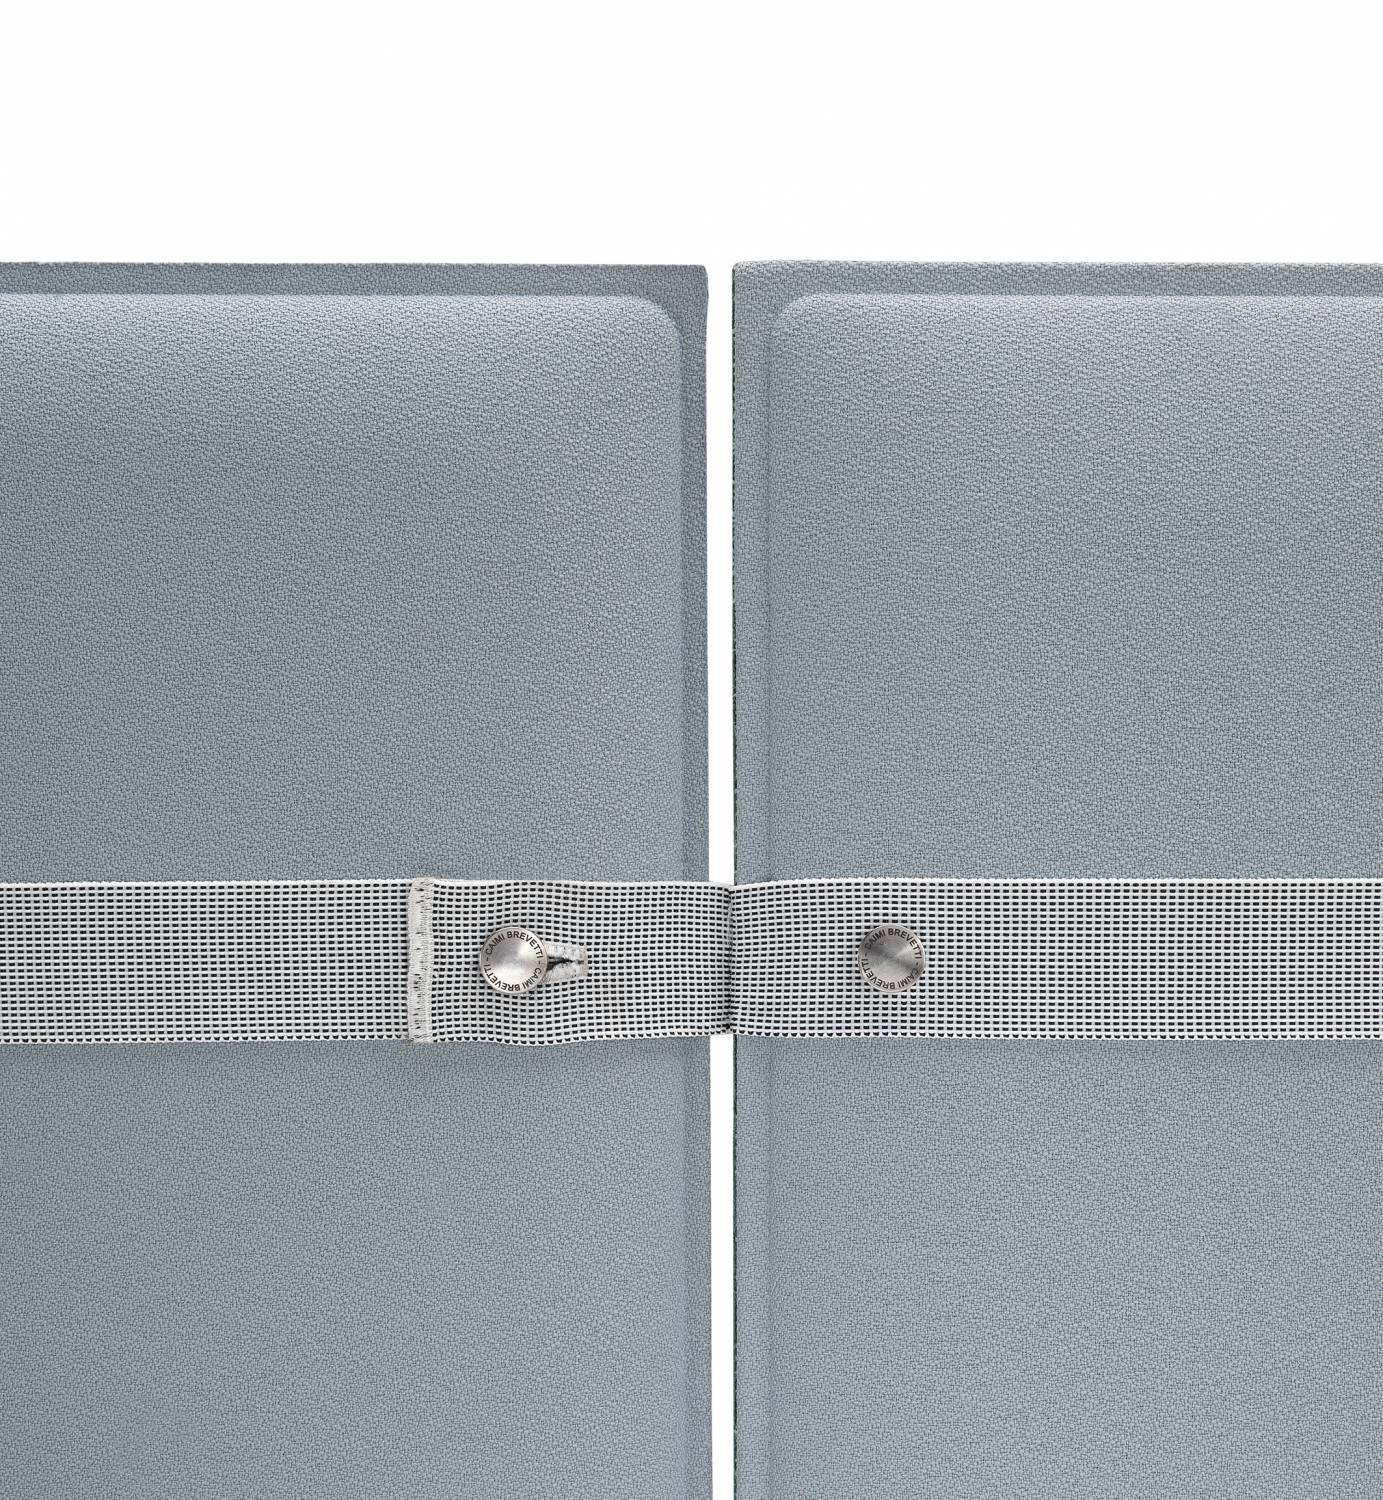 PLI-Oversized-Ocee-sound-Absorbing-Free-Standing-Office-Screens-Attachment-Fixings